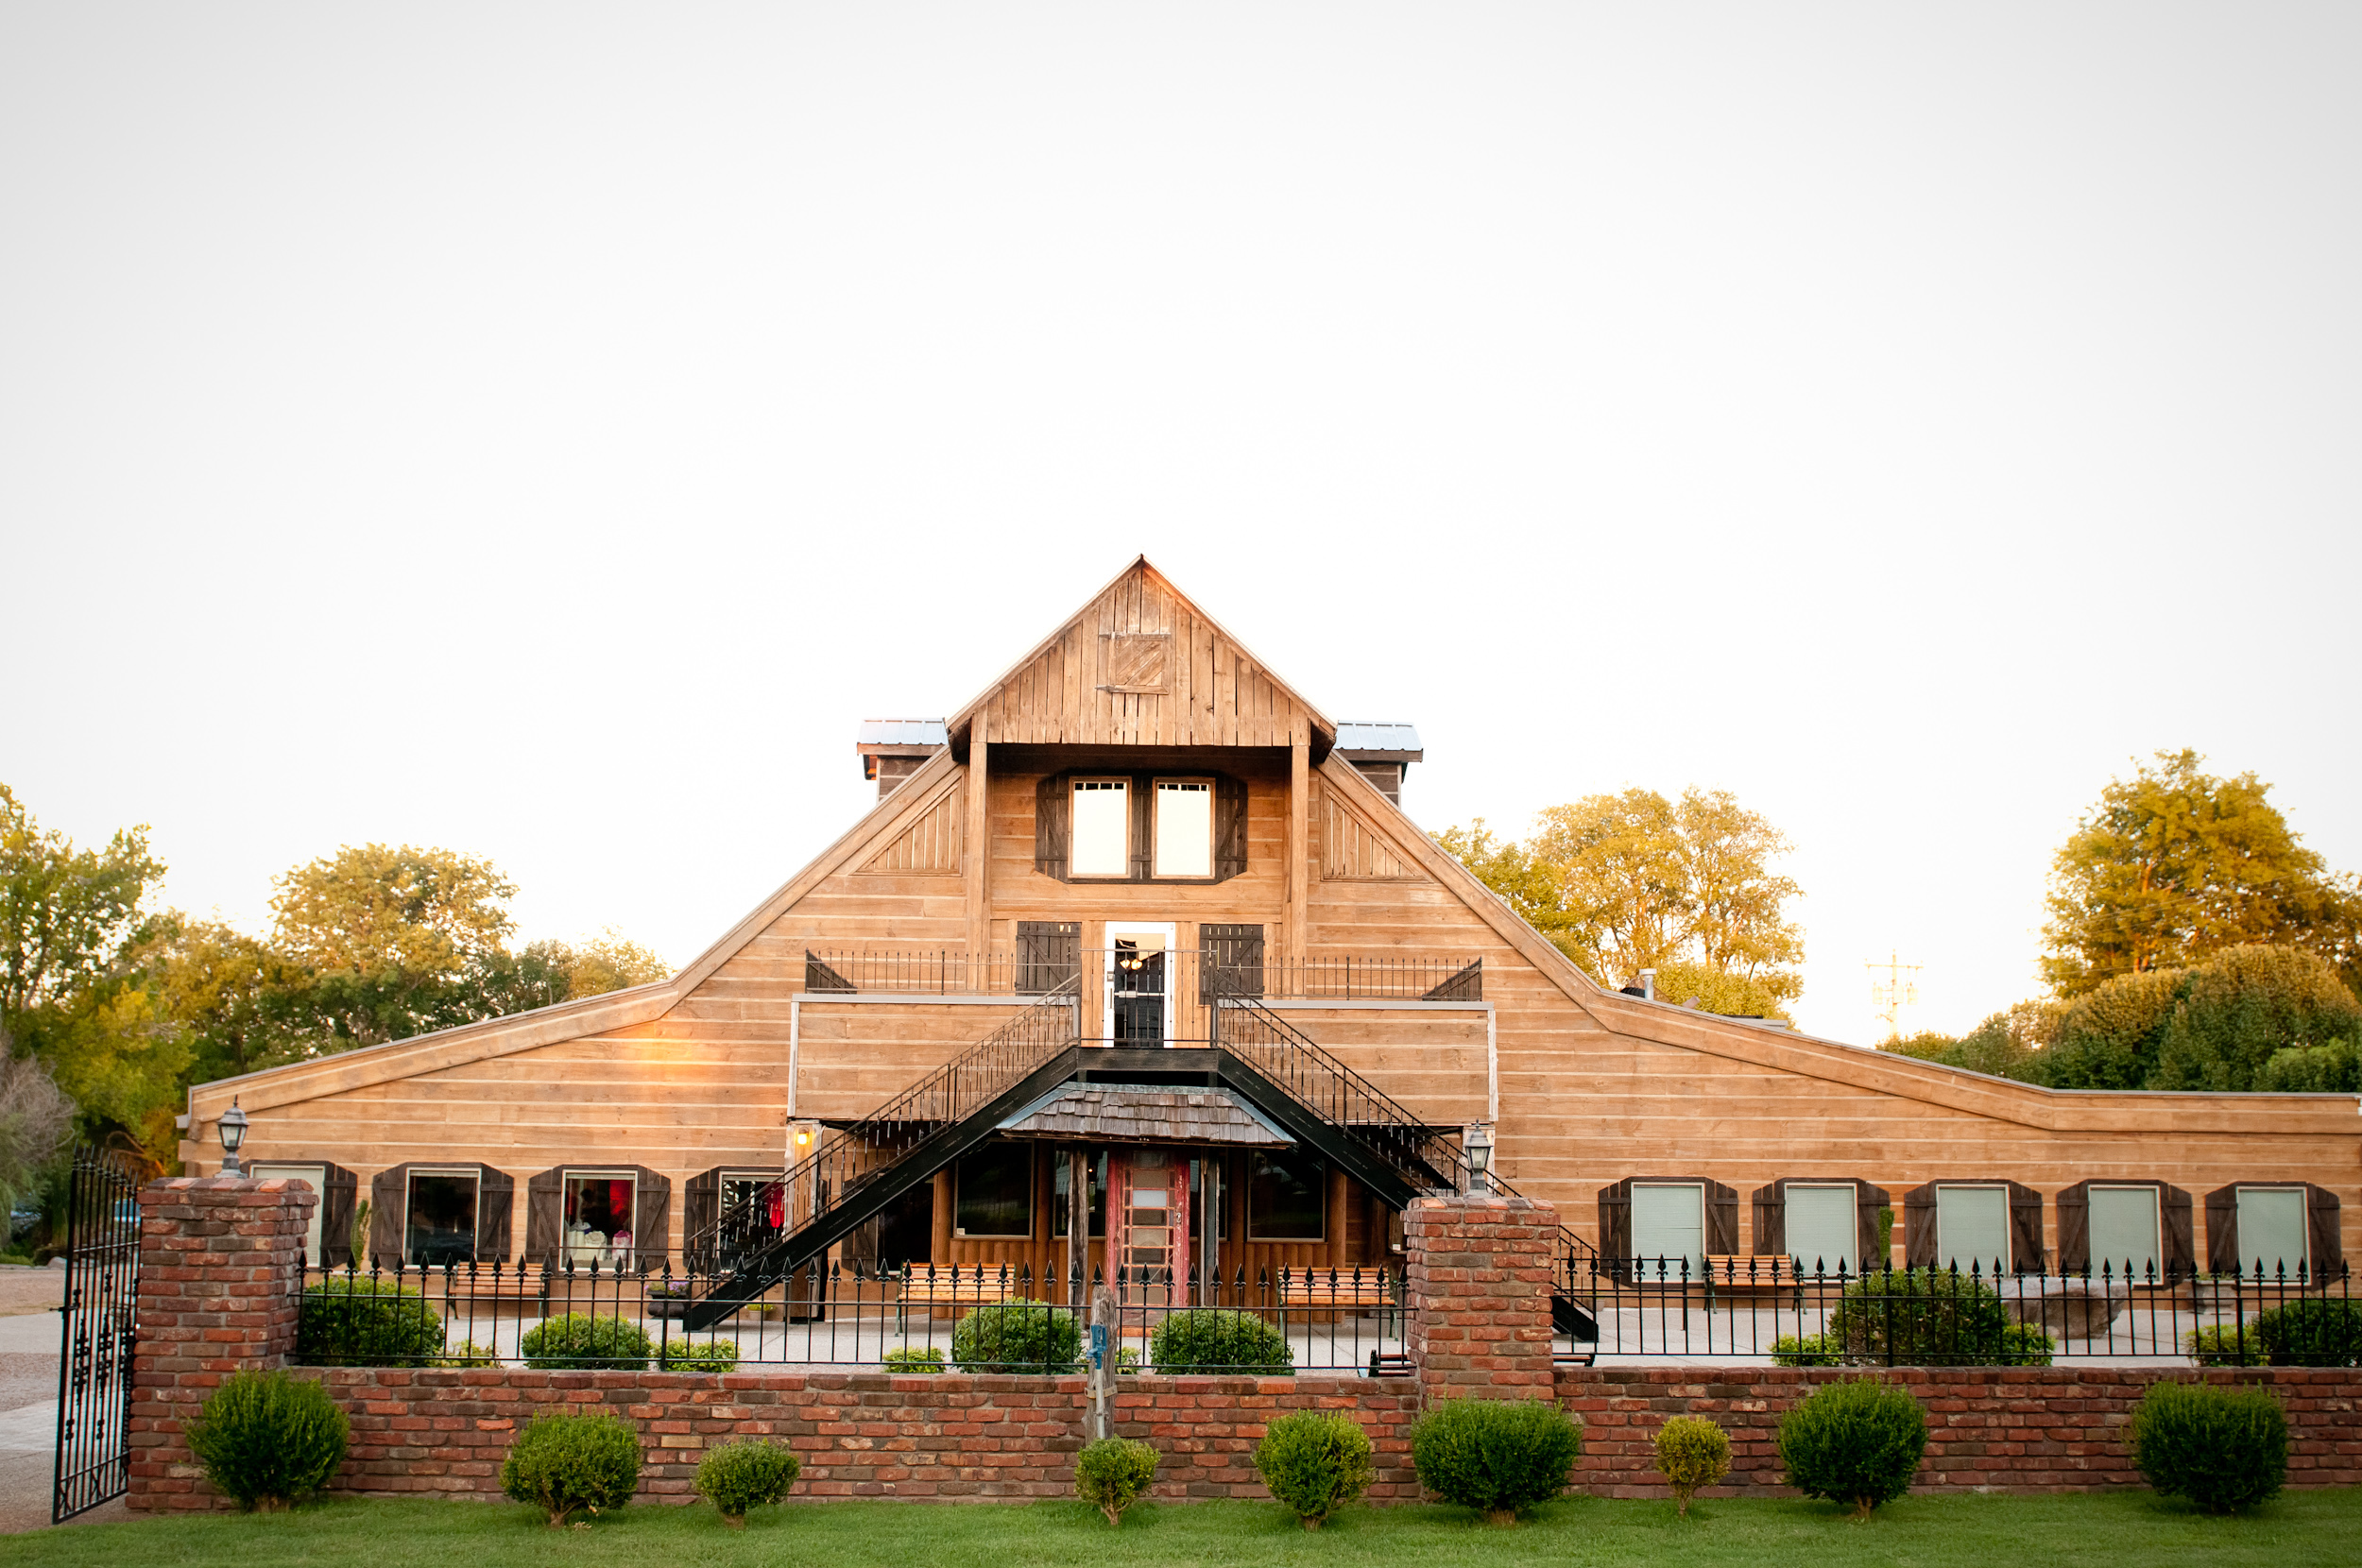 Legacy-Farms-Event-Center-barn-weddings-Nashville-weddings.jpg